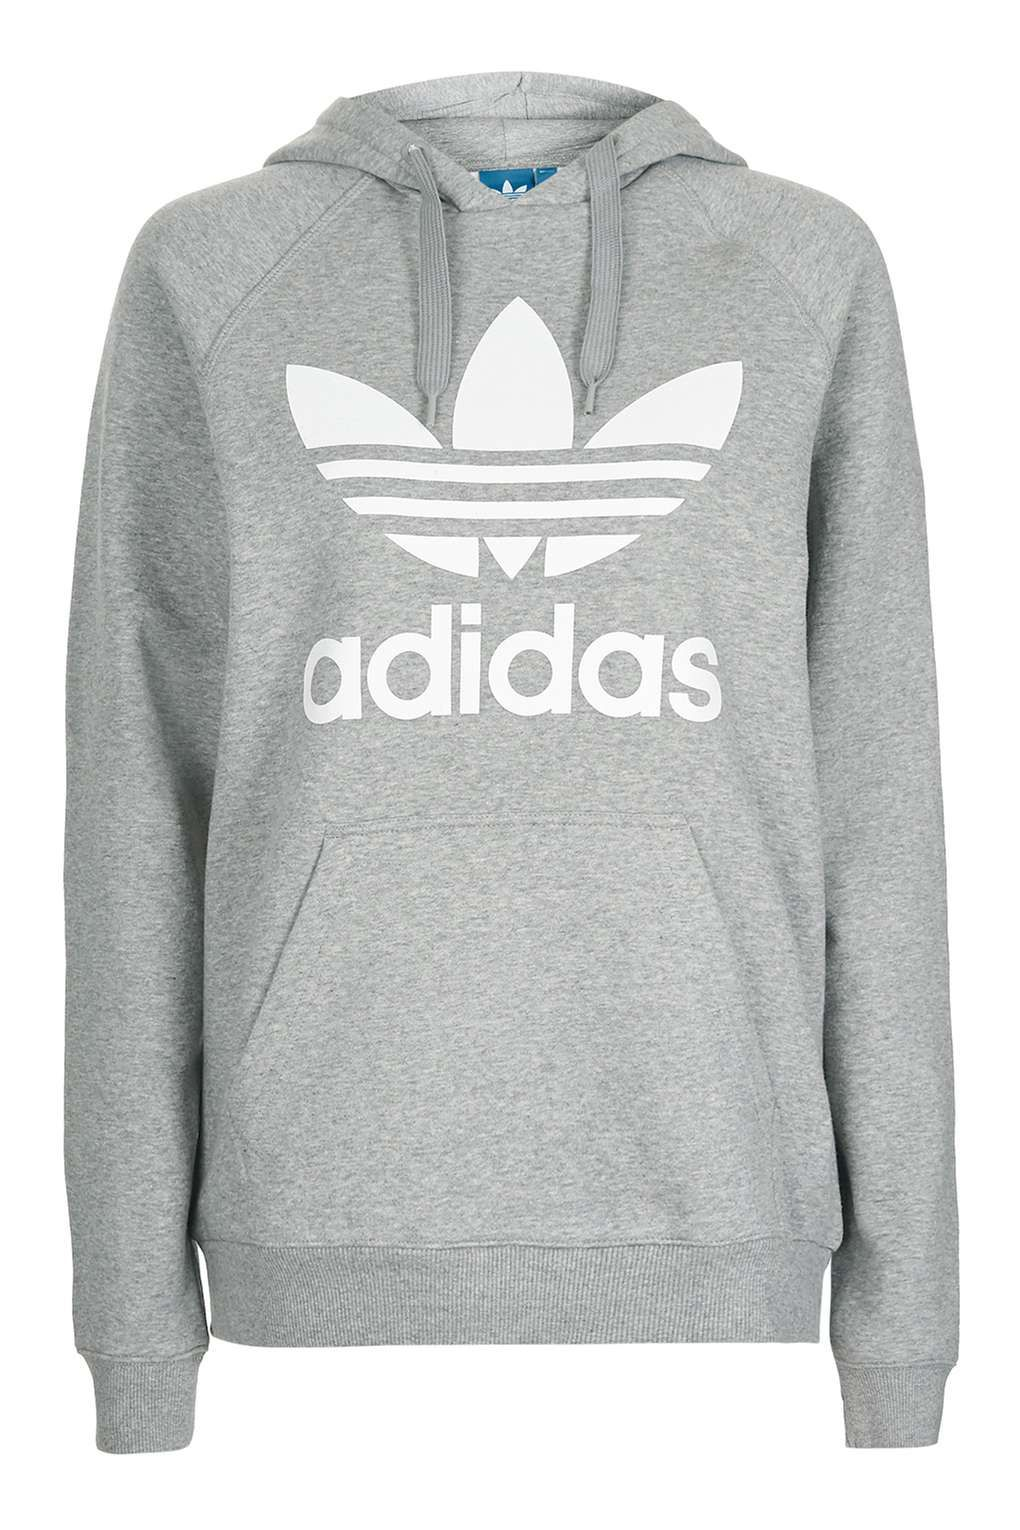 Adidas gray cropped hoodie athletic wear Depop